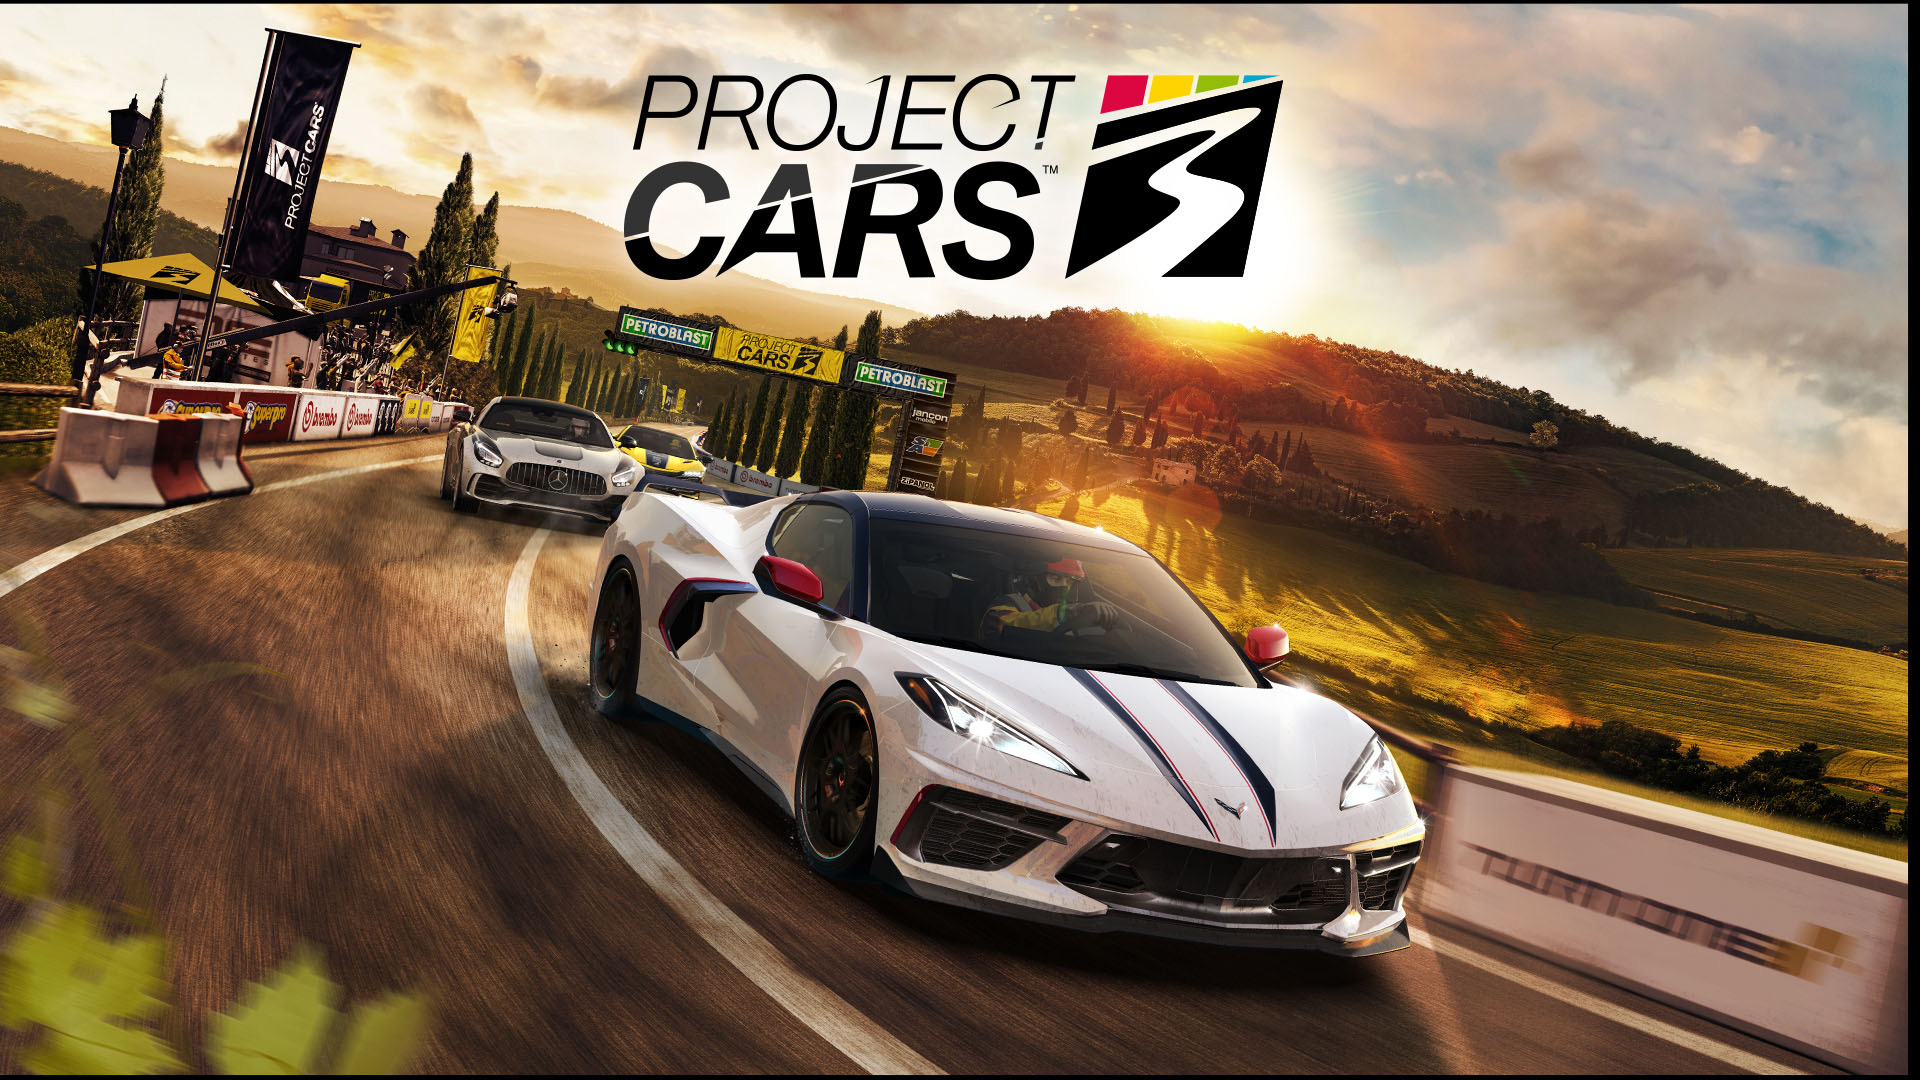 Video For Project CARS 3 Available Now: The Dev Team's Favorite Performance Car Upgrades